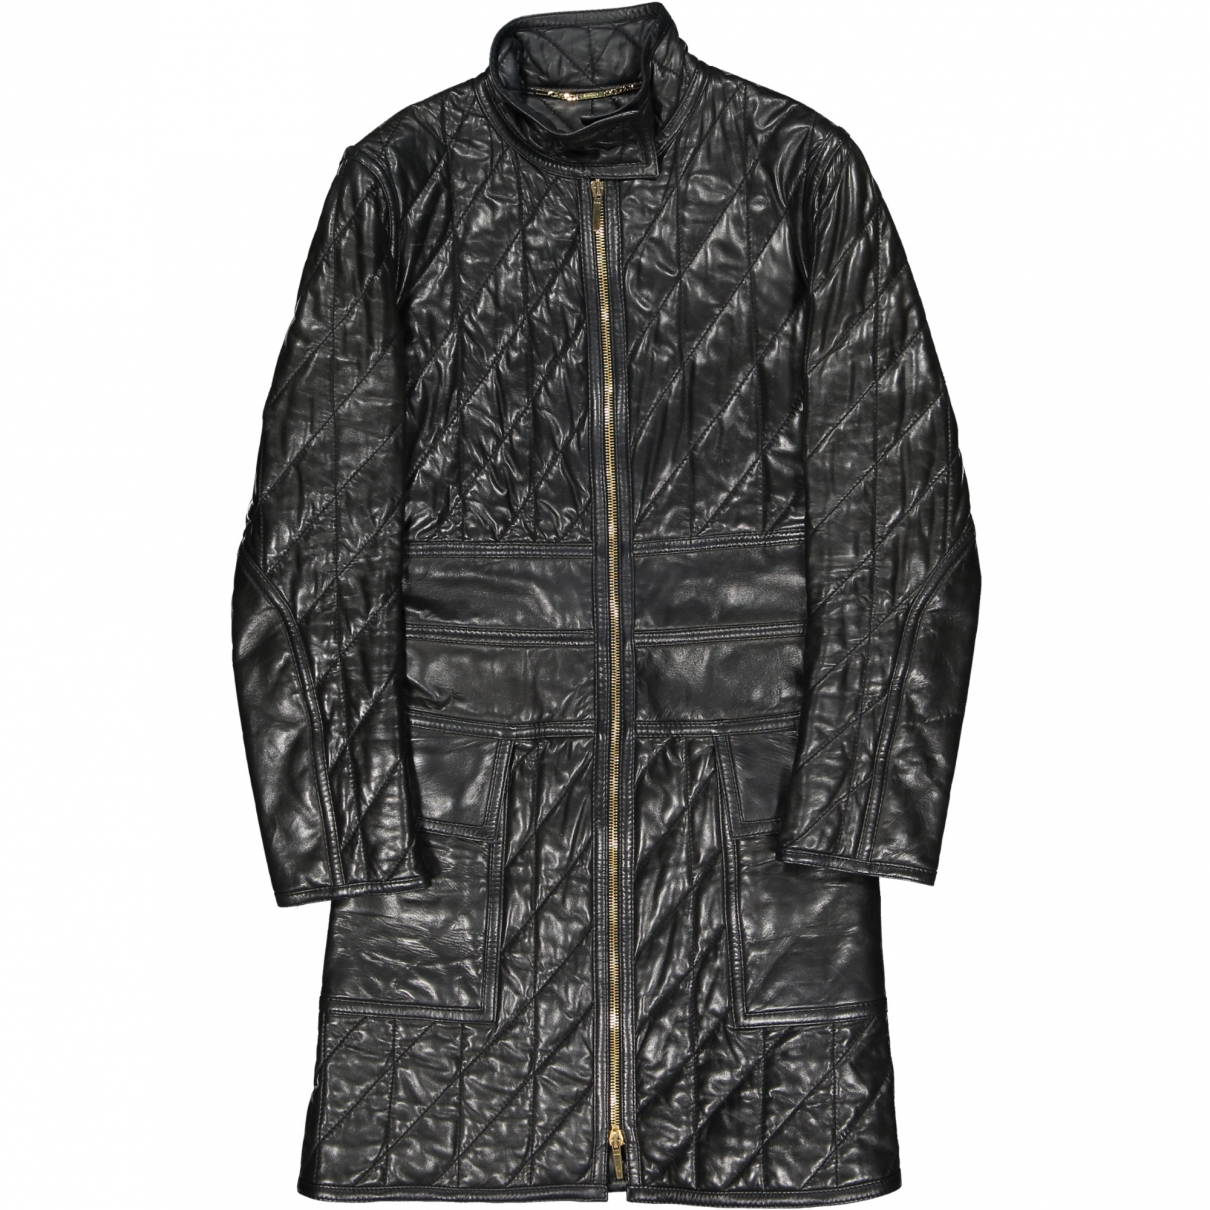 Gucci \N Black Leather coat for Women 38 IT